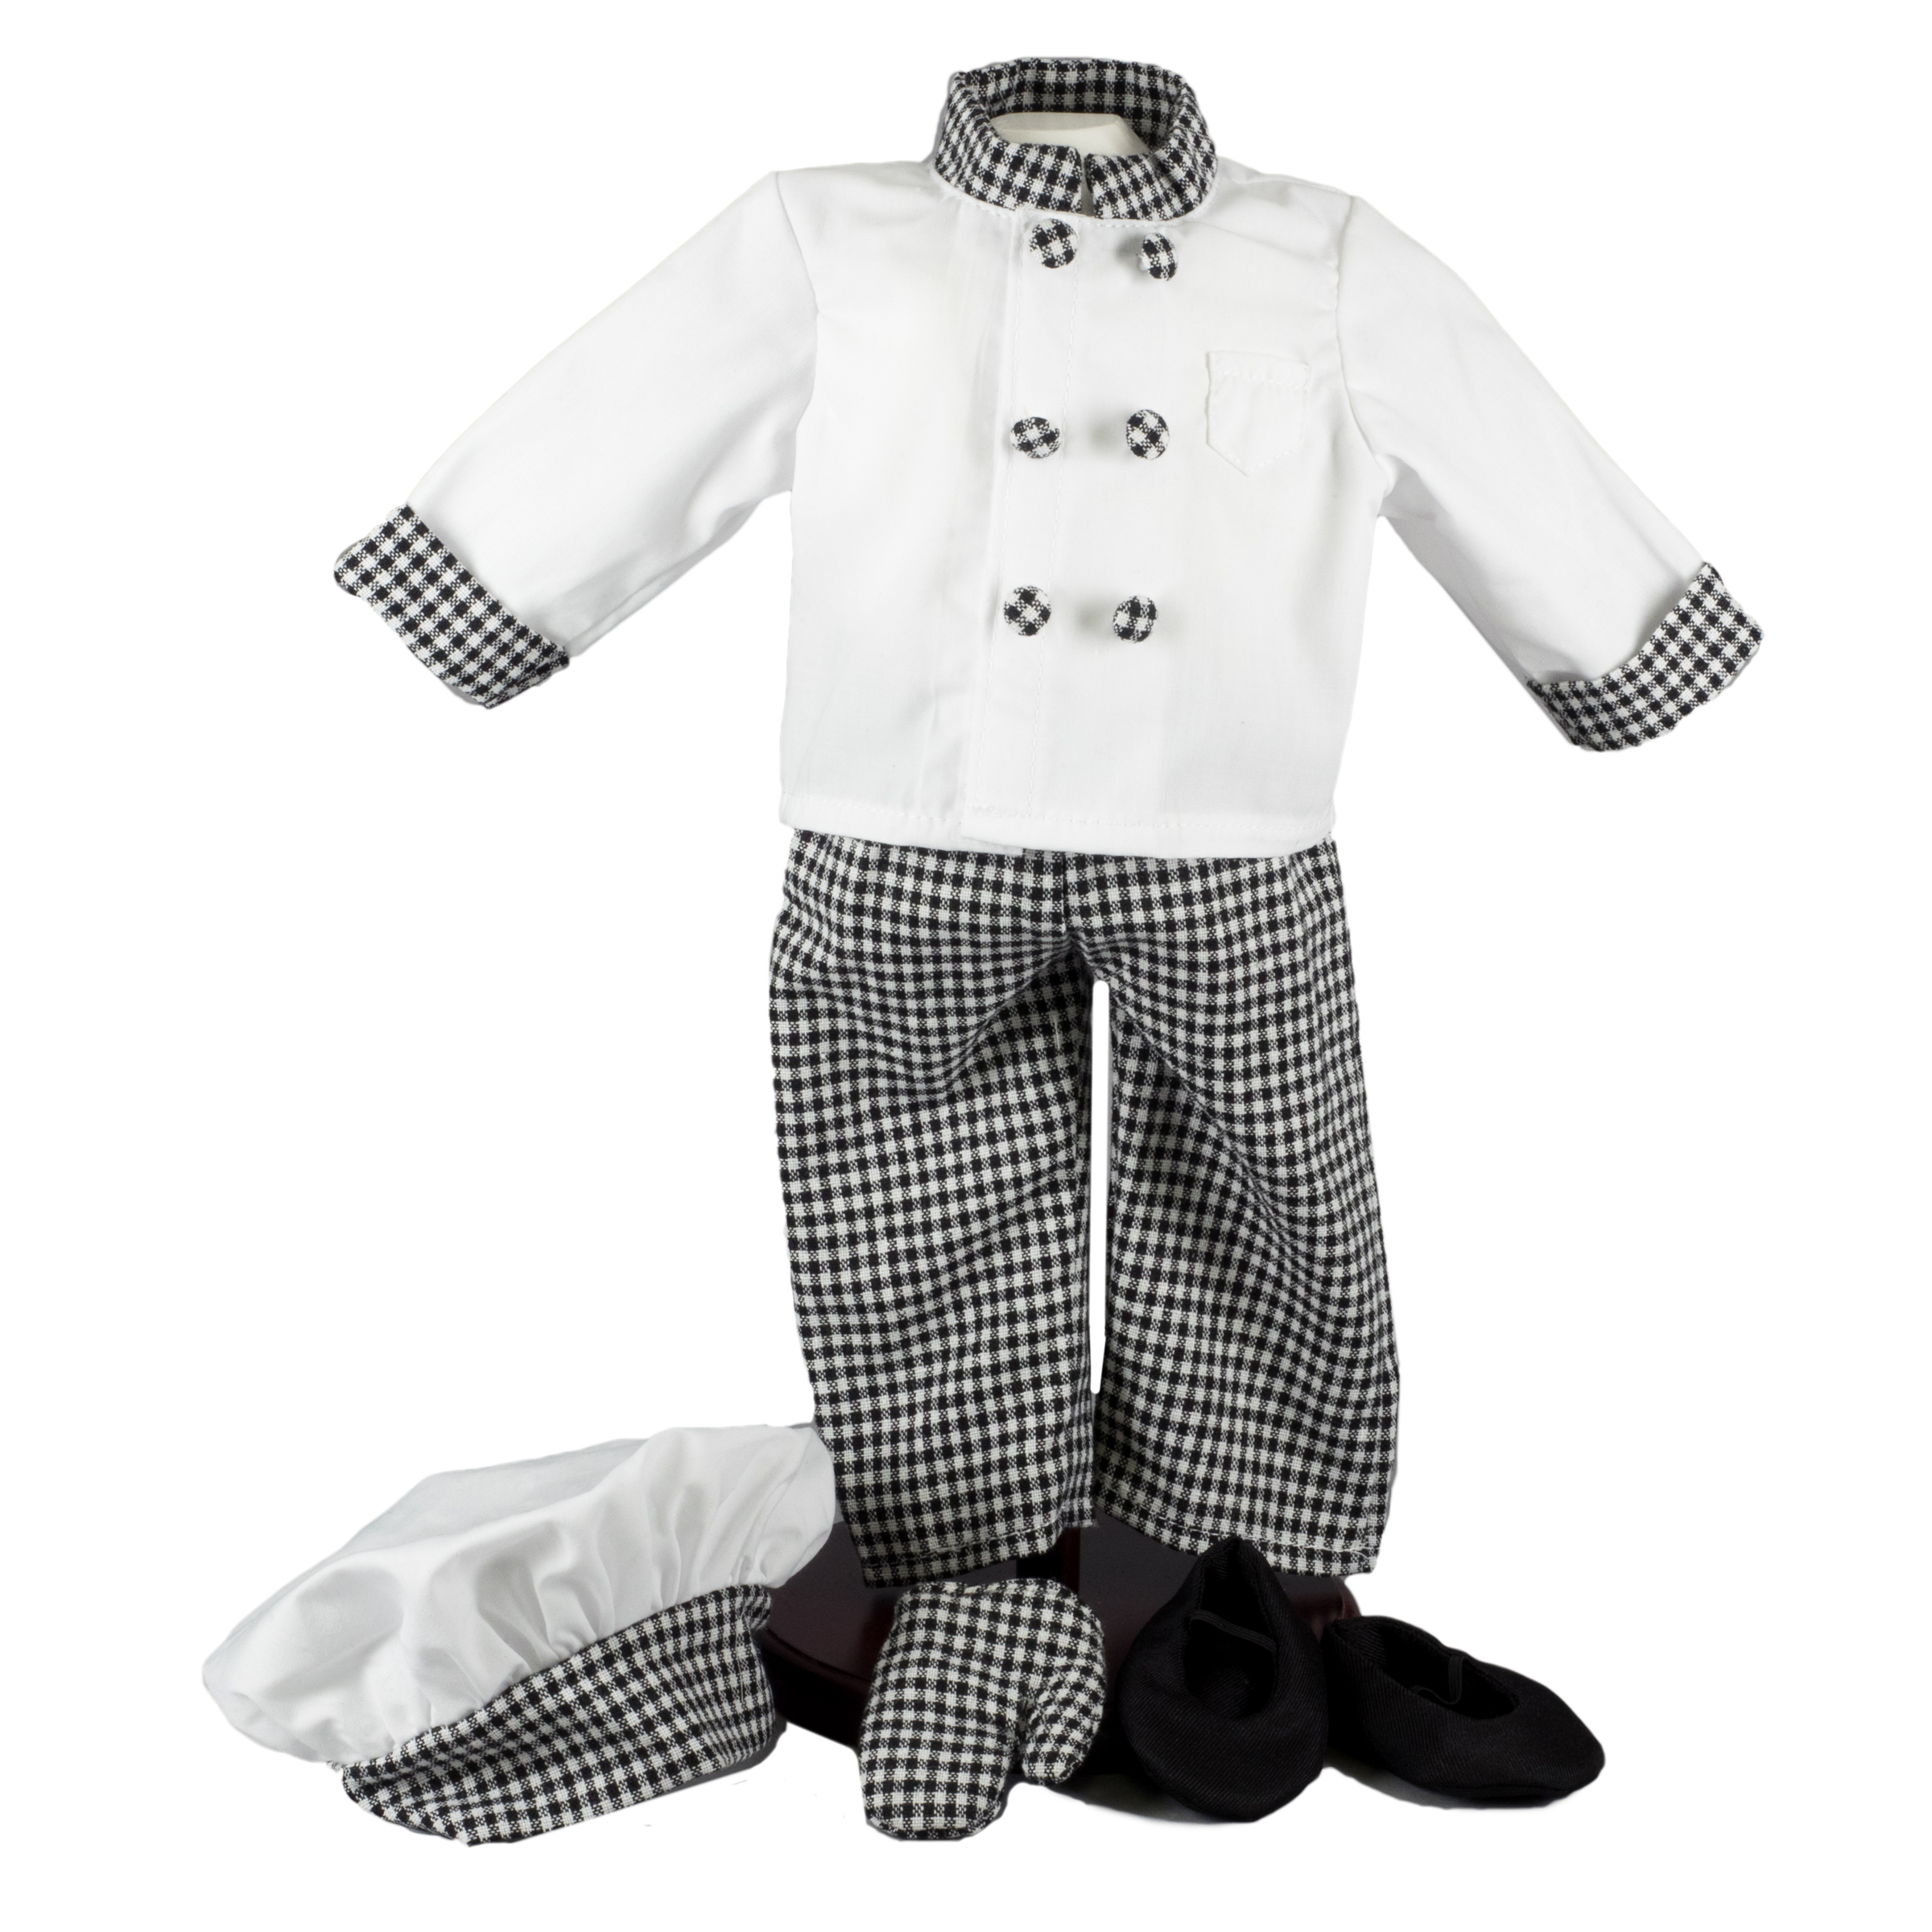 "The Queen's Treasures Chef's Outfit: Hat Jacket Pants shoes Oven Mitt Fits 18"" American Girl ® Doll Clothes & Accessorie Multi-Color plus size,  plus size fashion plus size appare"